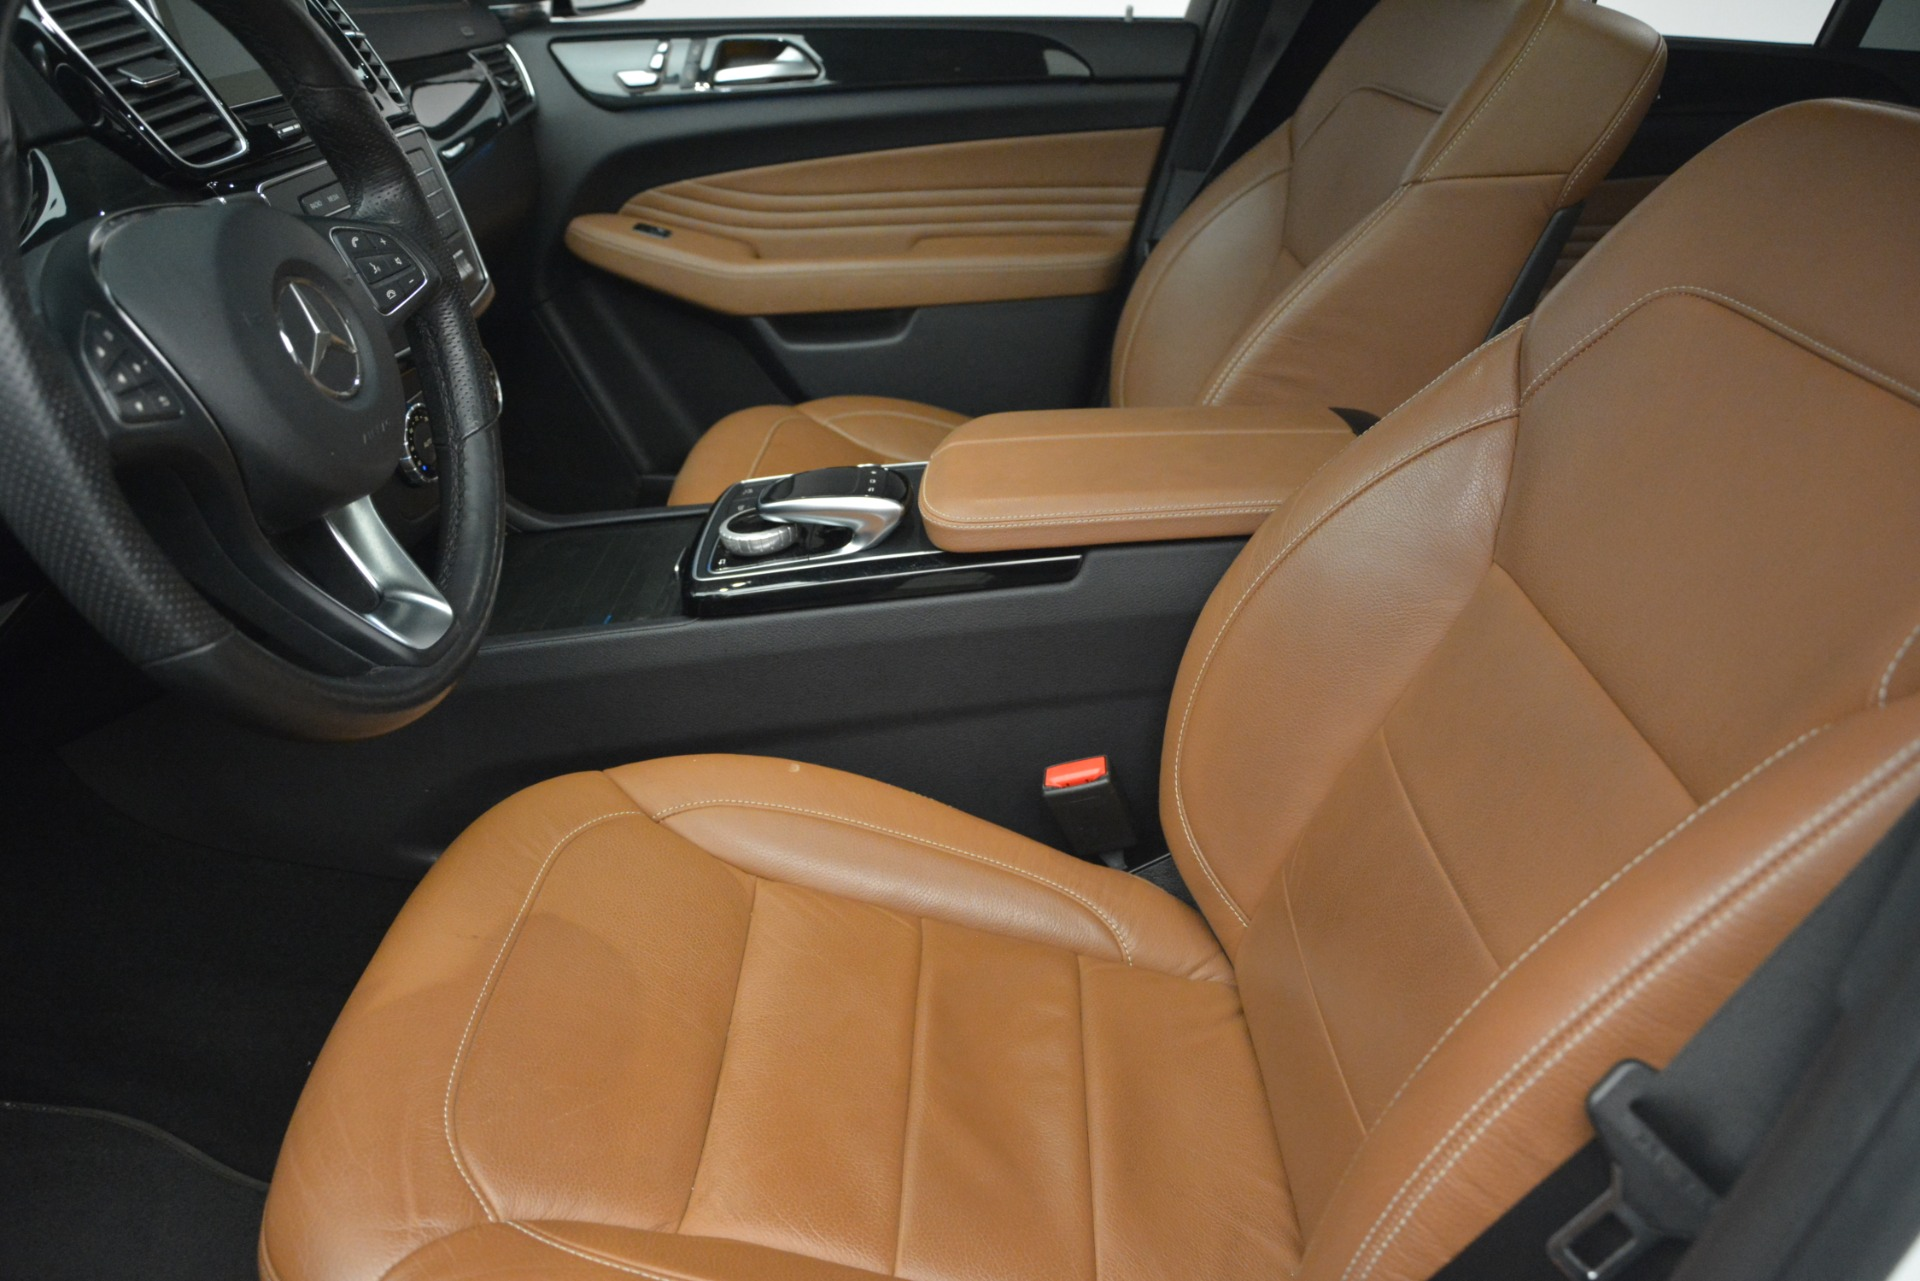 Used 2016 Mercedes-Benz GLE 450 AMG Coupe 4MATIC For Sale In Westport, CT 2787_p14